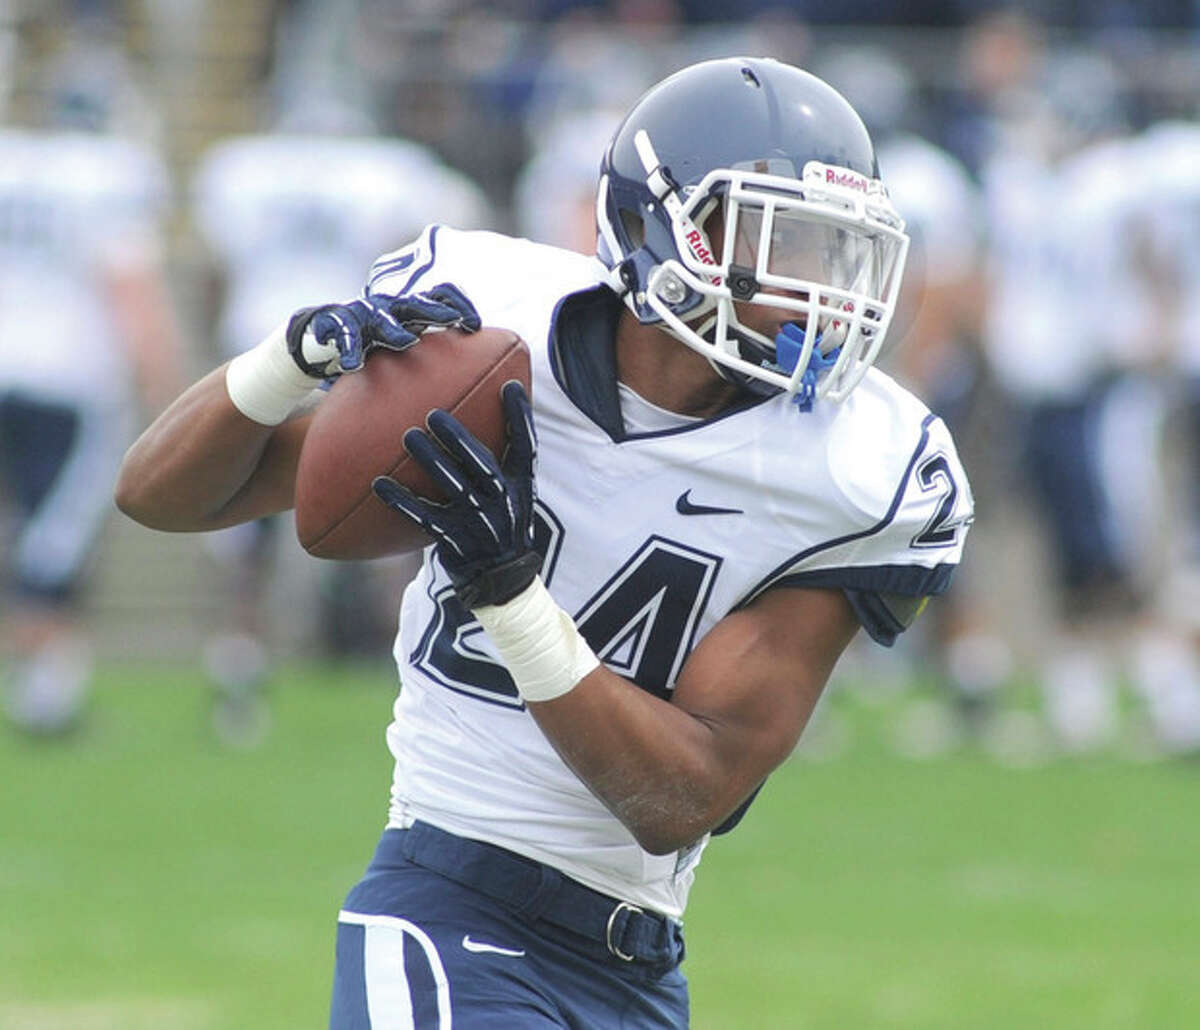 Hour photo/John Nash Noel Thomas of Norwalk, a graduate of St. Luke's School, got his first official game action with the University of Connecticut football team on Saturday, suiting up as a wide receiver during the Huskies annual Spring Blue-White game.